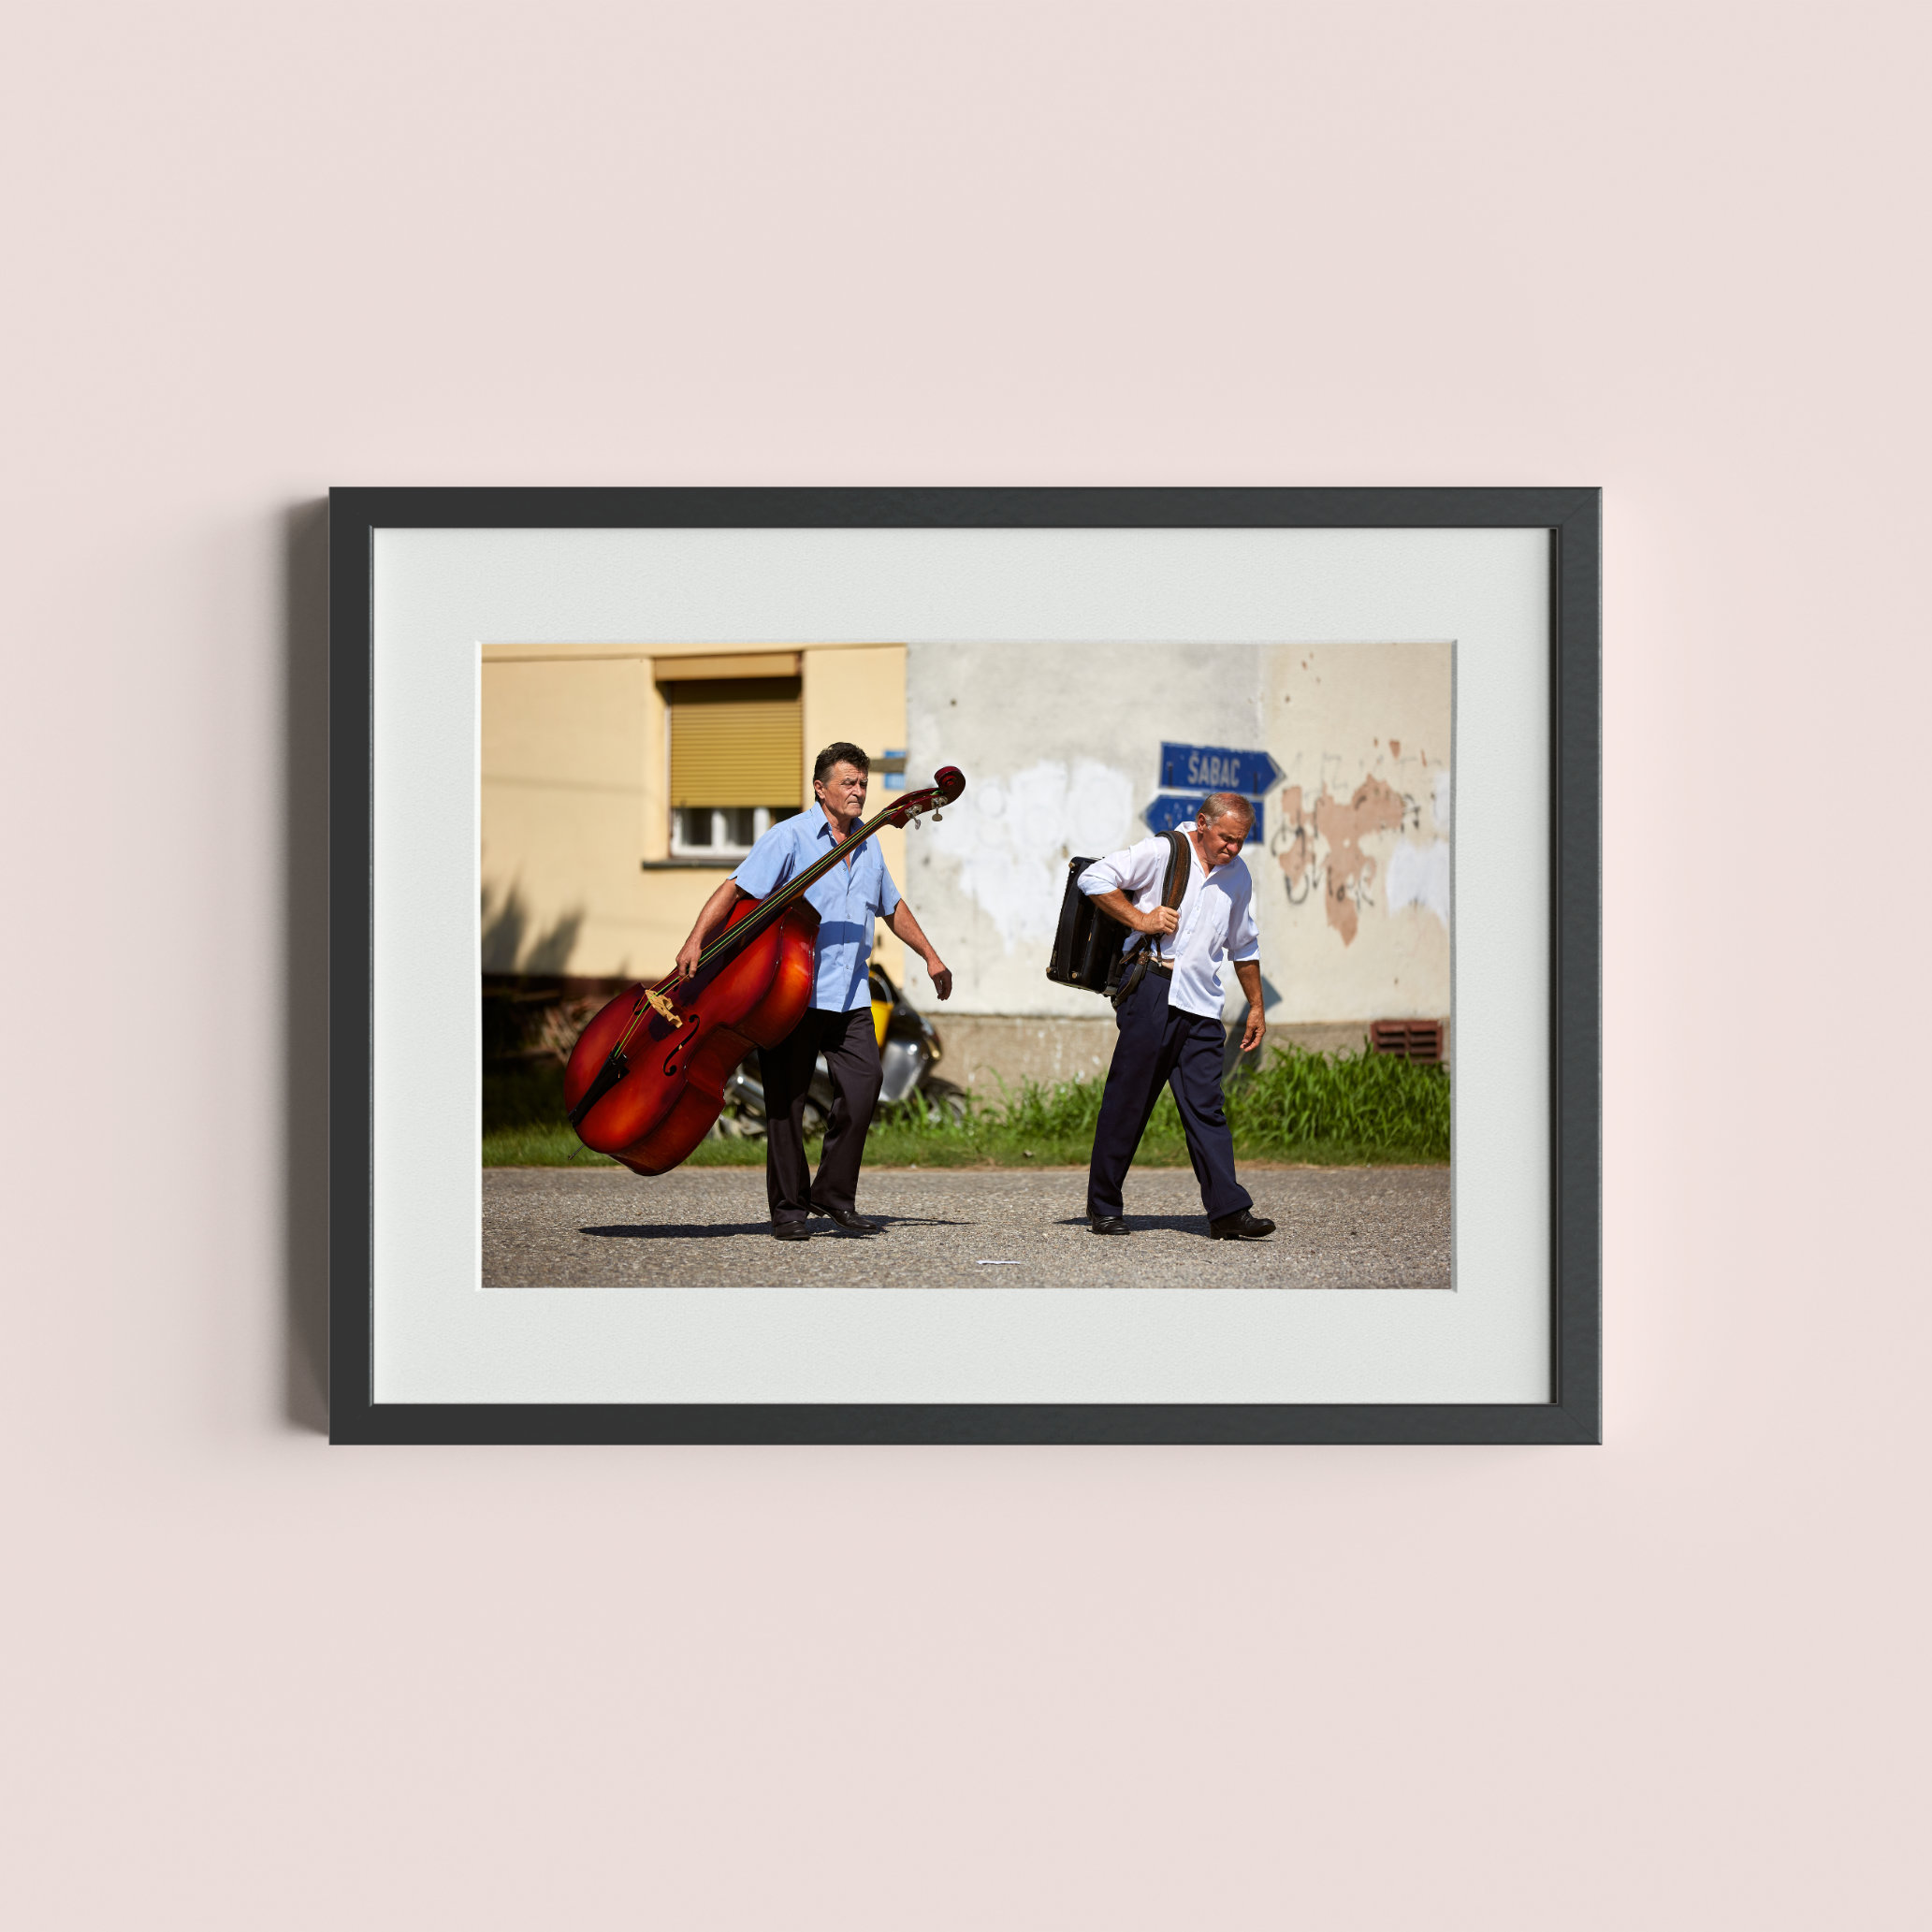 DUBLJE, SERBIA - August 9, 2014: Musicians return home after the village fair in Dublje.